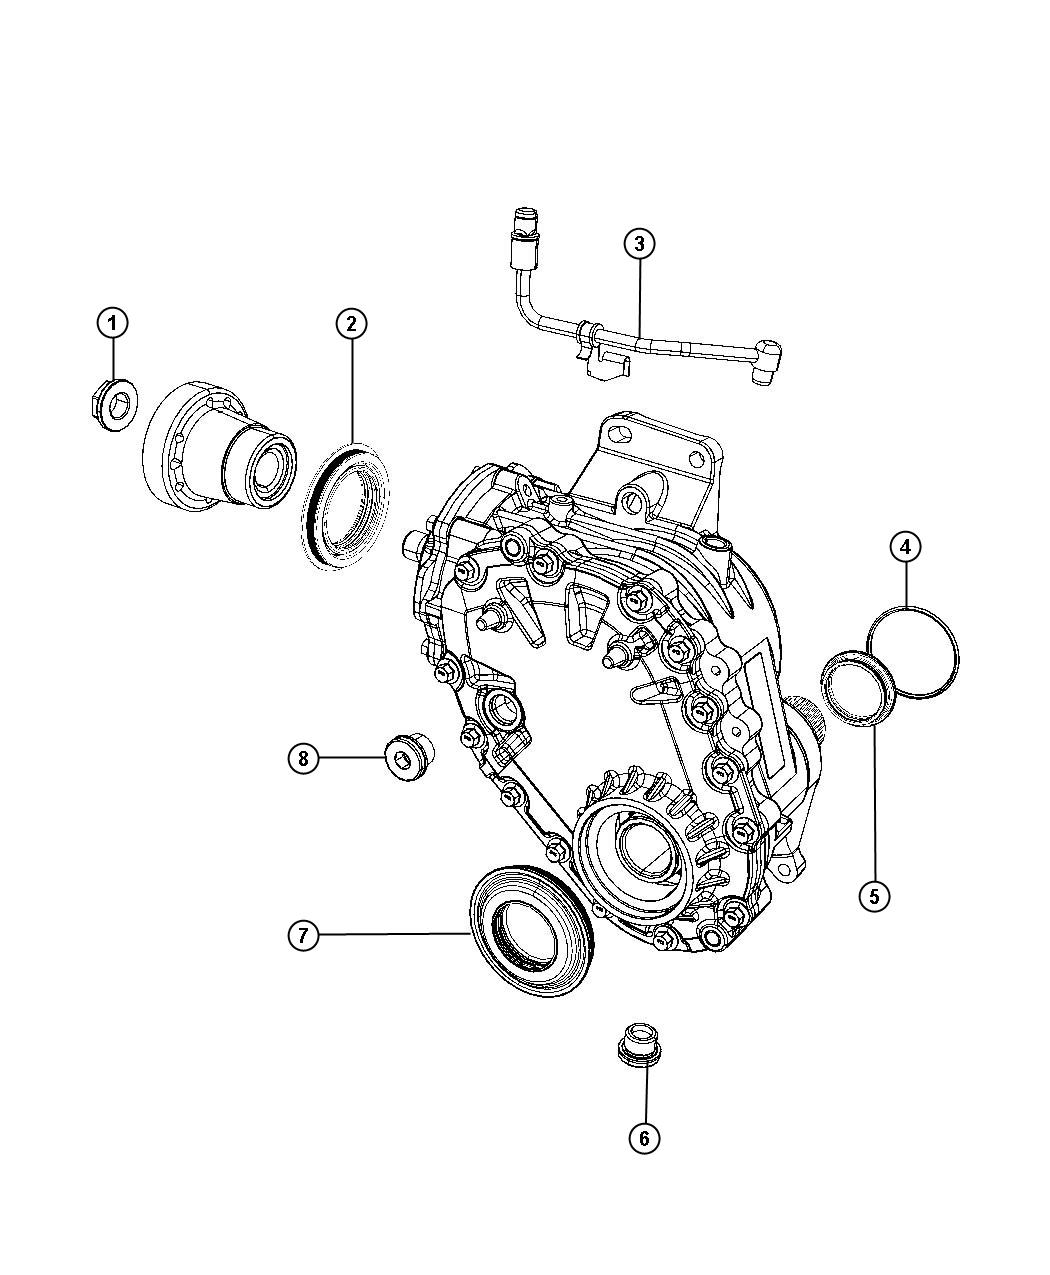 Ford Tractor Power Steering Cylinder as well Motor Aksami also 1999 Jeep Cherokee Parts Catalog together with Dodge Journey Parts Mopar For Chrysler And Html in addition Amc 360 Cooling System Diagram. on amc v 8 5 0l 304 and 9l